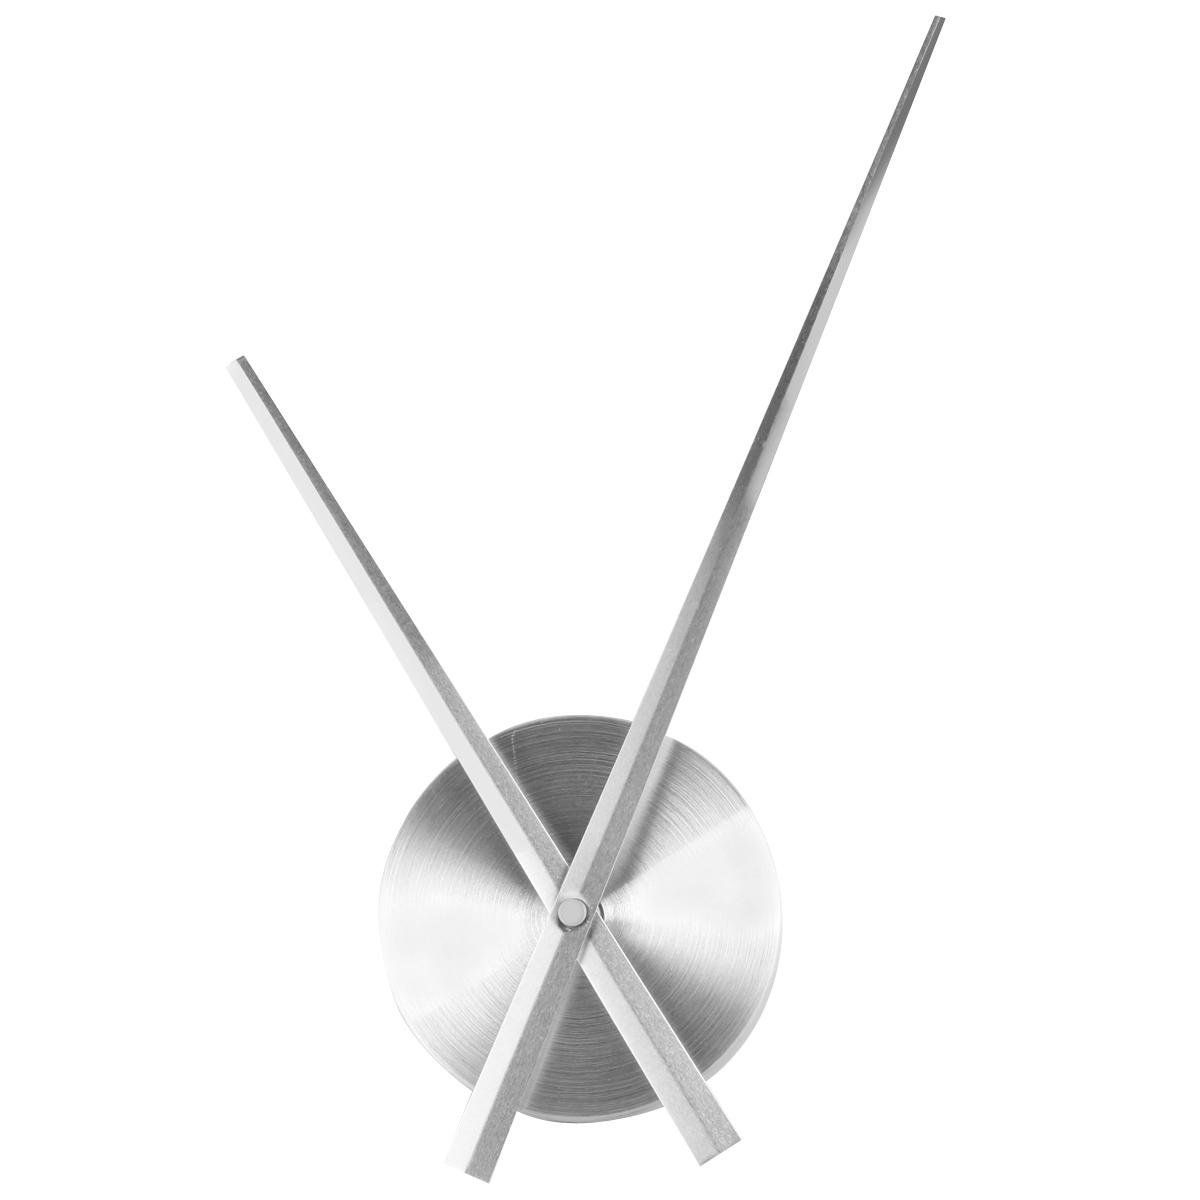 Yesurprise Modern Aluminum 3d Clock Hands Movement Time For Wall Clock House Diy Room Home Decorations Mini Diy Clock Wall Modern Clock Wall Clock Accessories